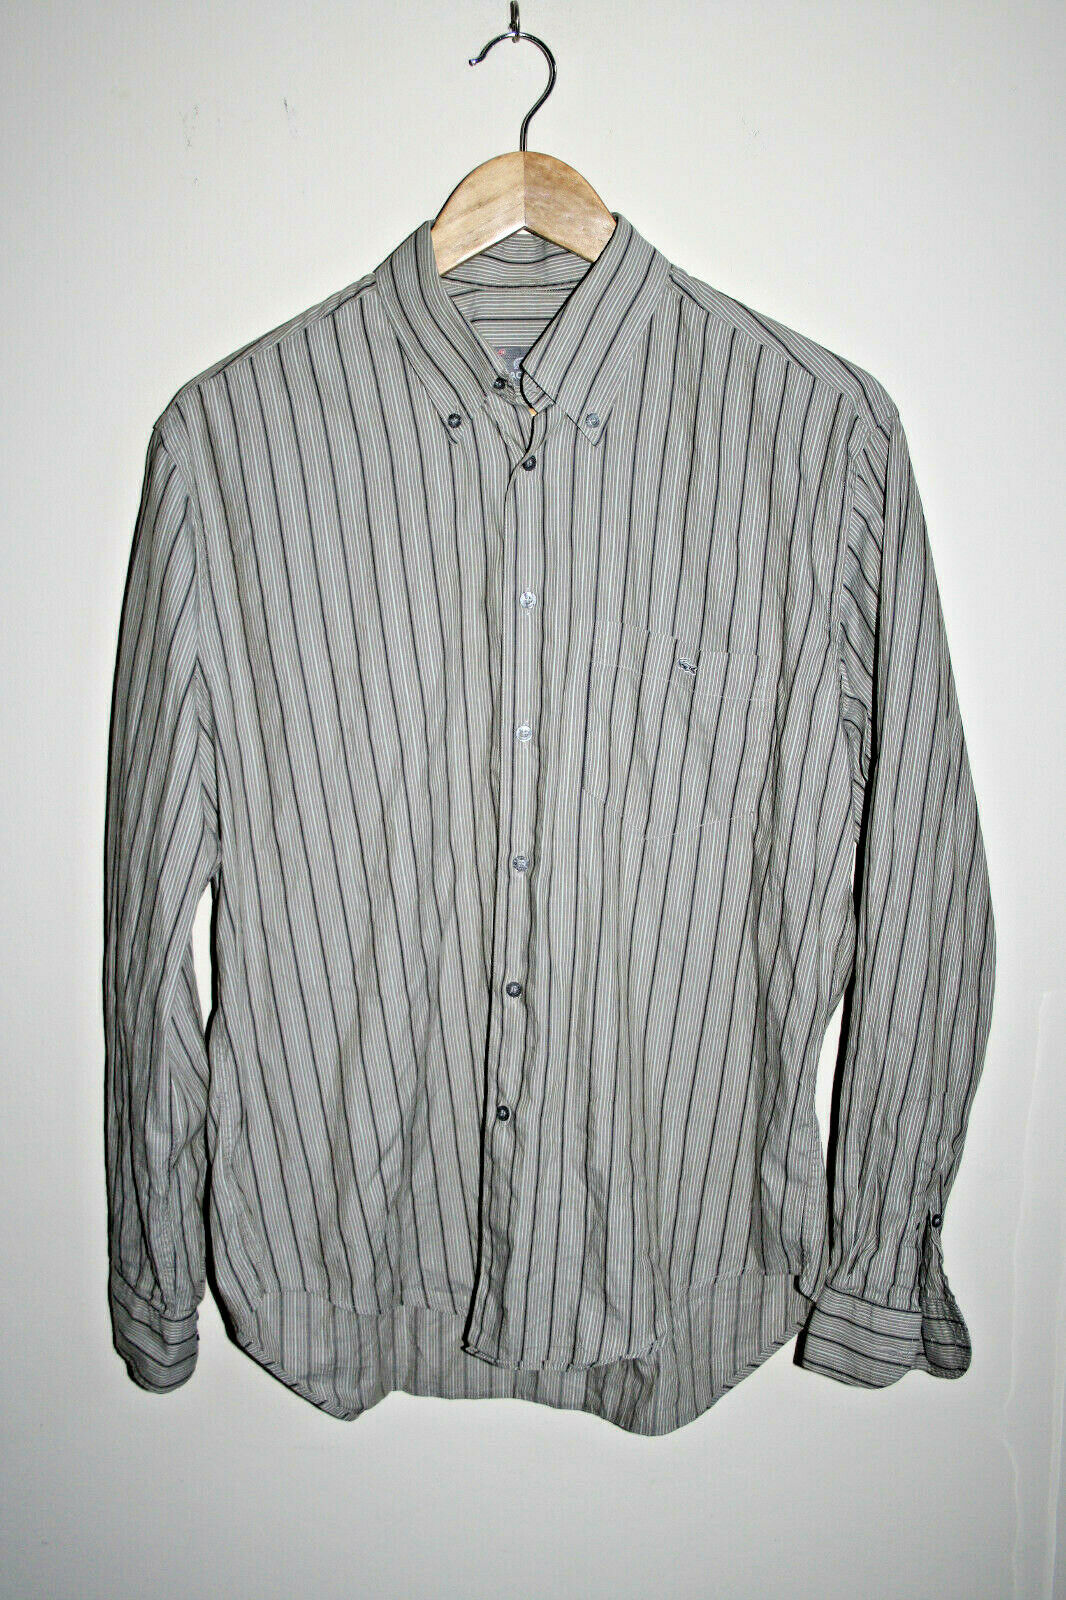 Lacoste Fashion Designer Striped Grey Men's Long Sleeve Shirt Cotton Casual 40